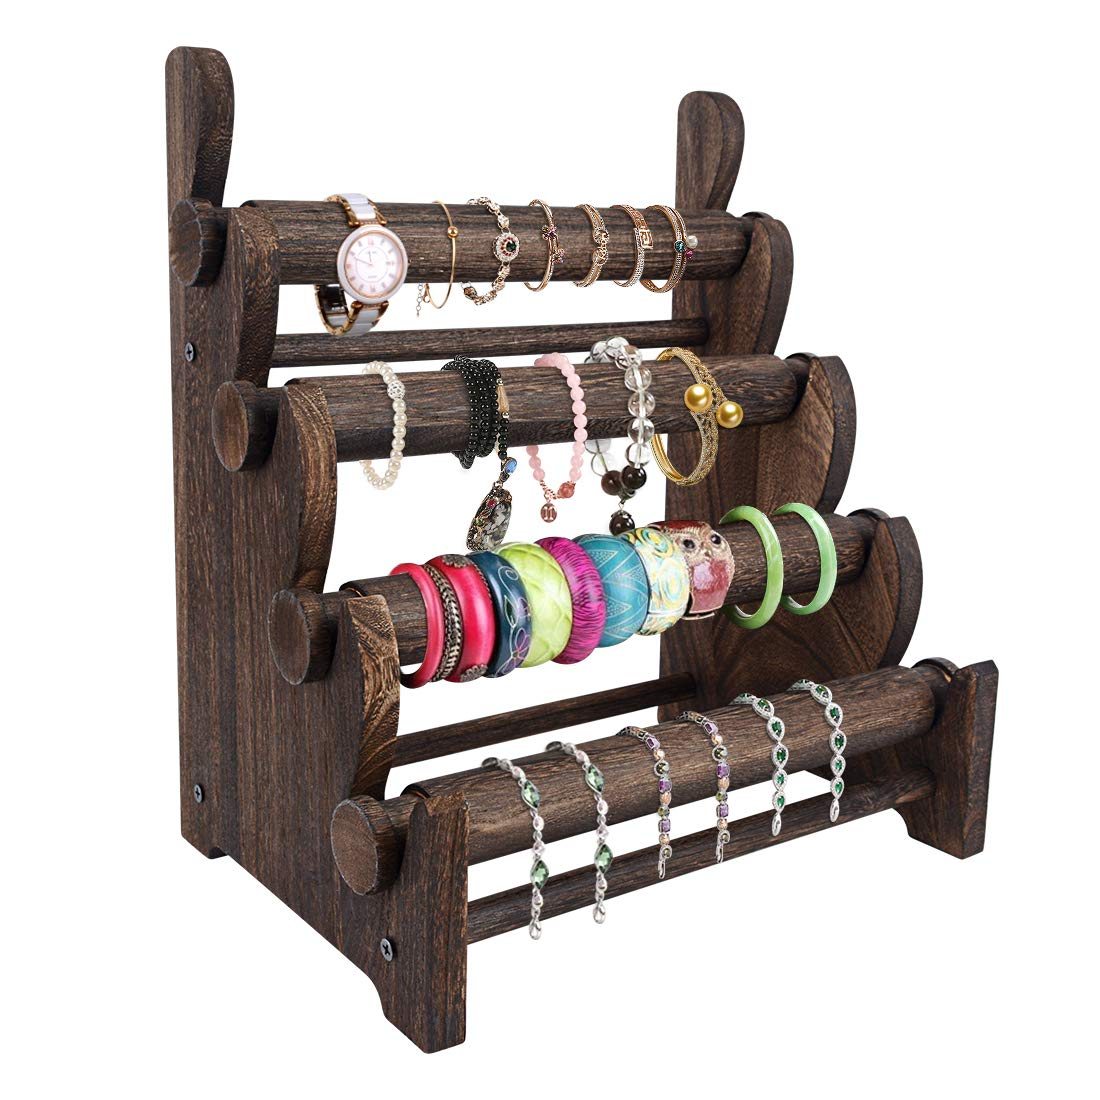 Amazon Com Topnew 4 Tier Wooden Bracelet Holder Bangle Watch Necklace Display Storage Jewelry Holder Stand Display Organizer Brown Home Kitchen